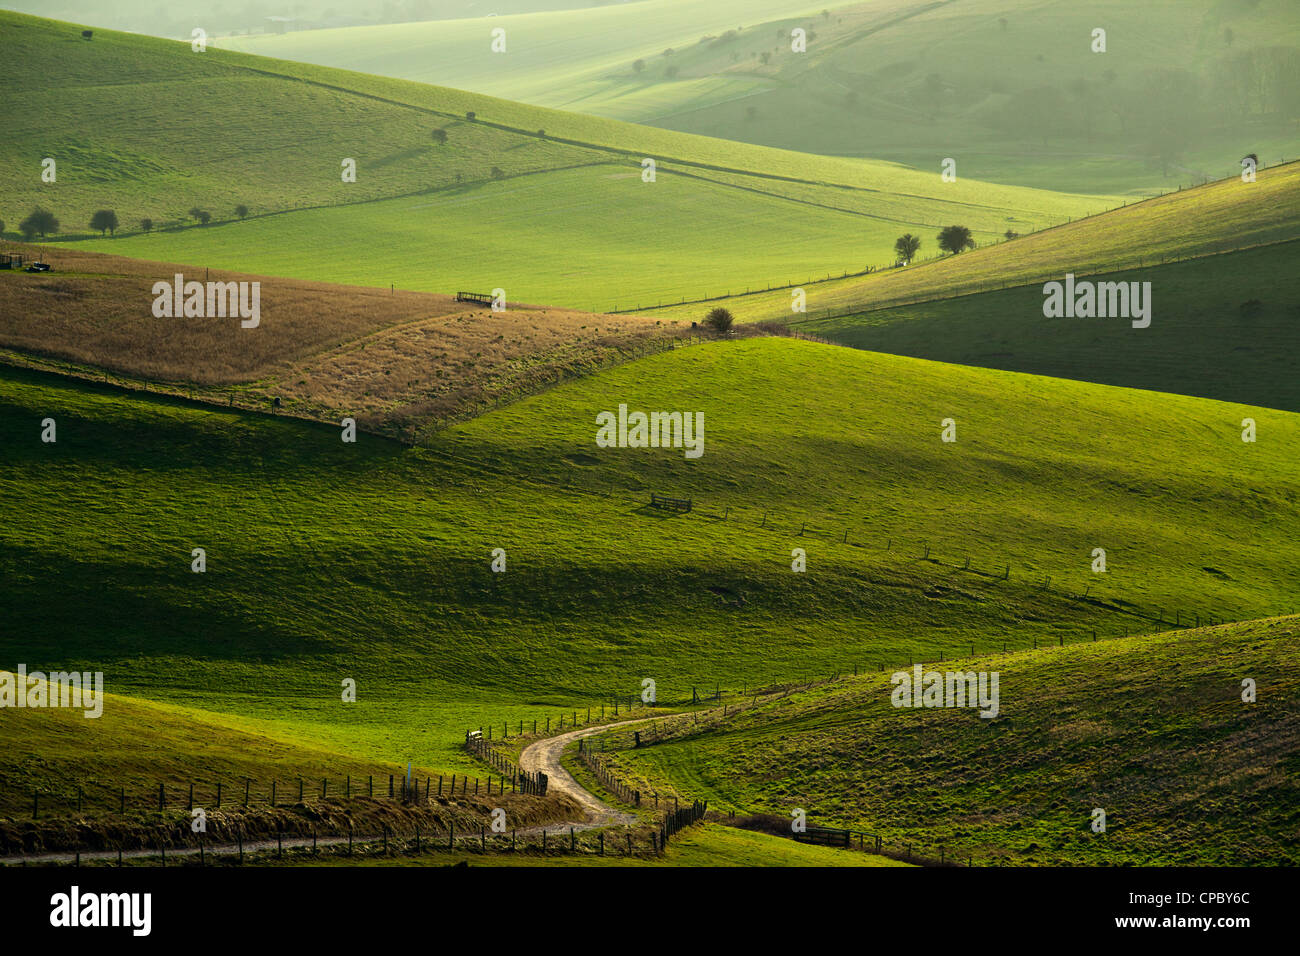 South Downs National Park, East Sussex, England. - Stock Image